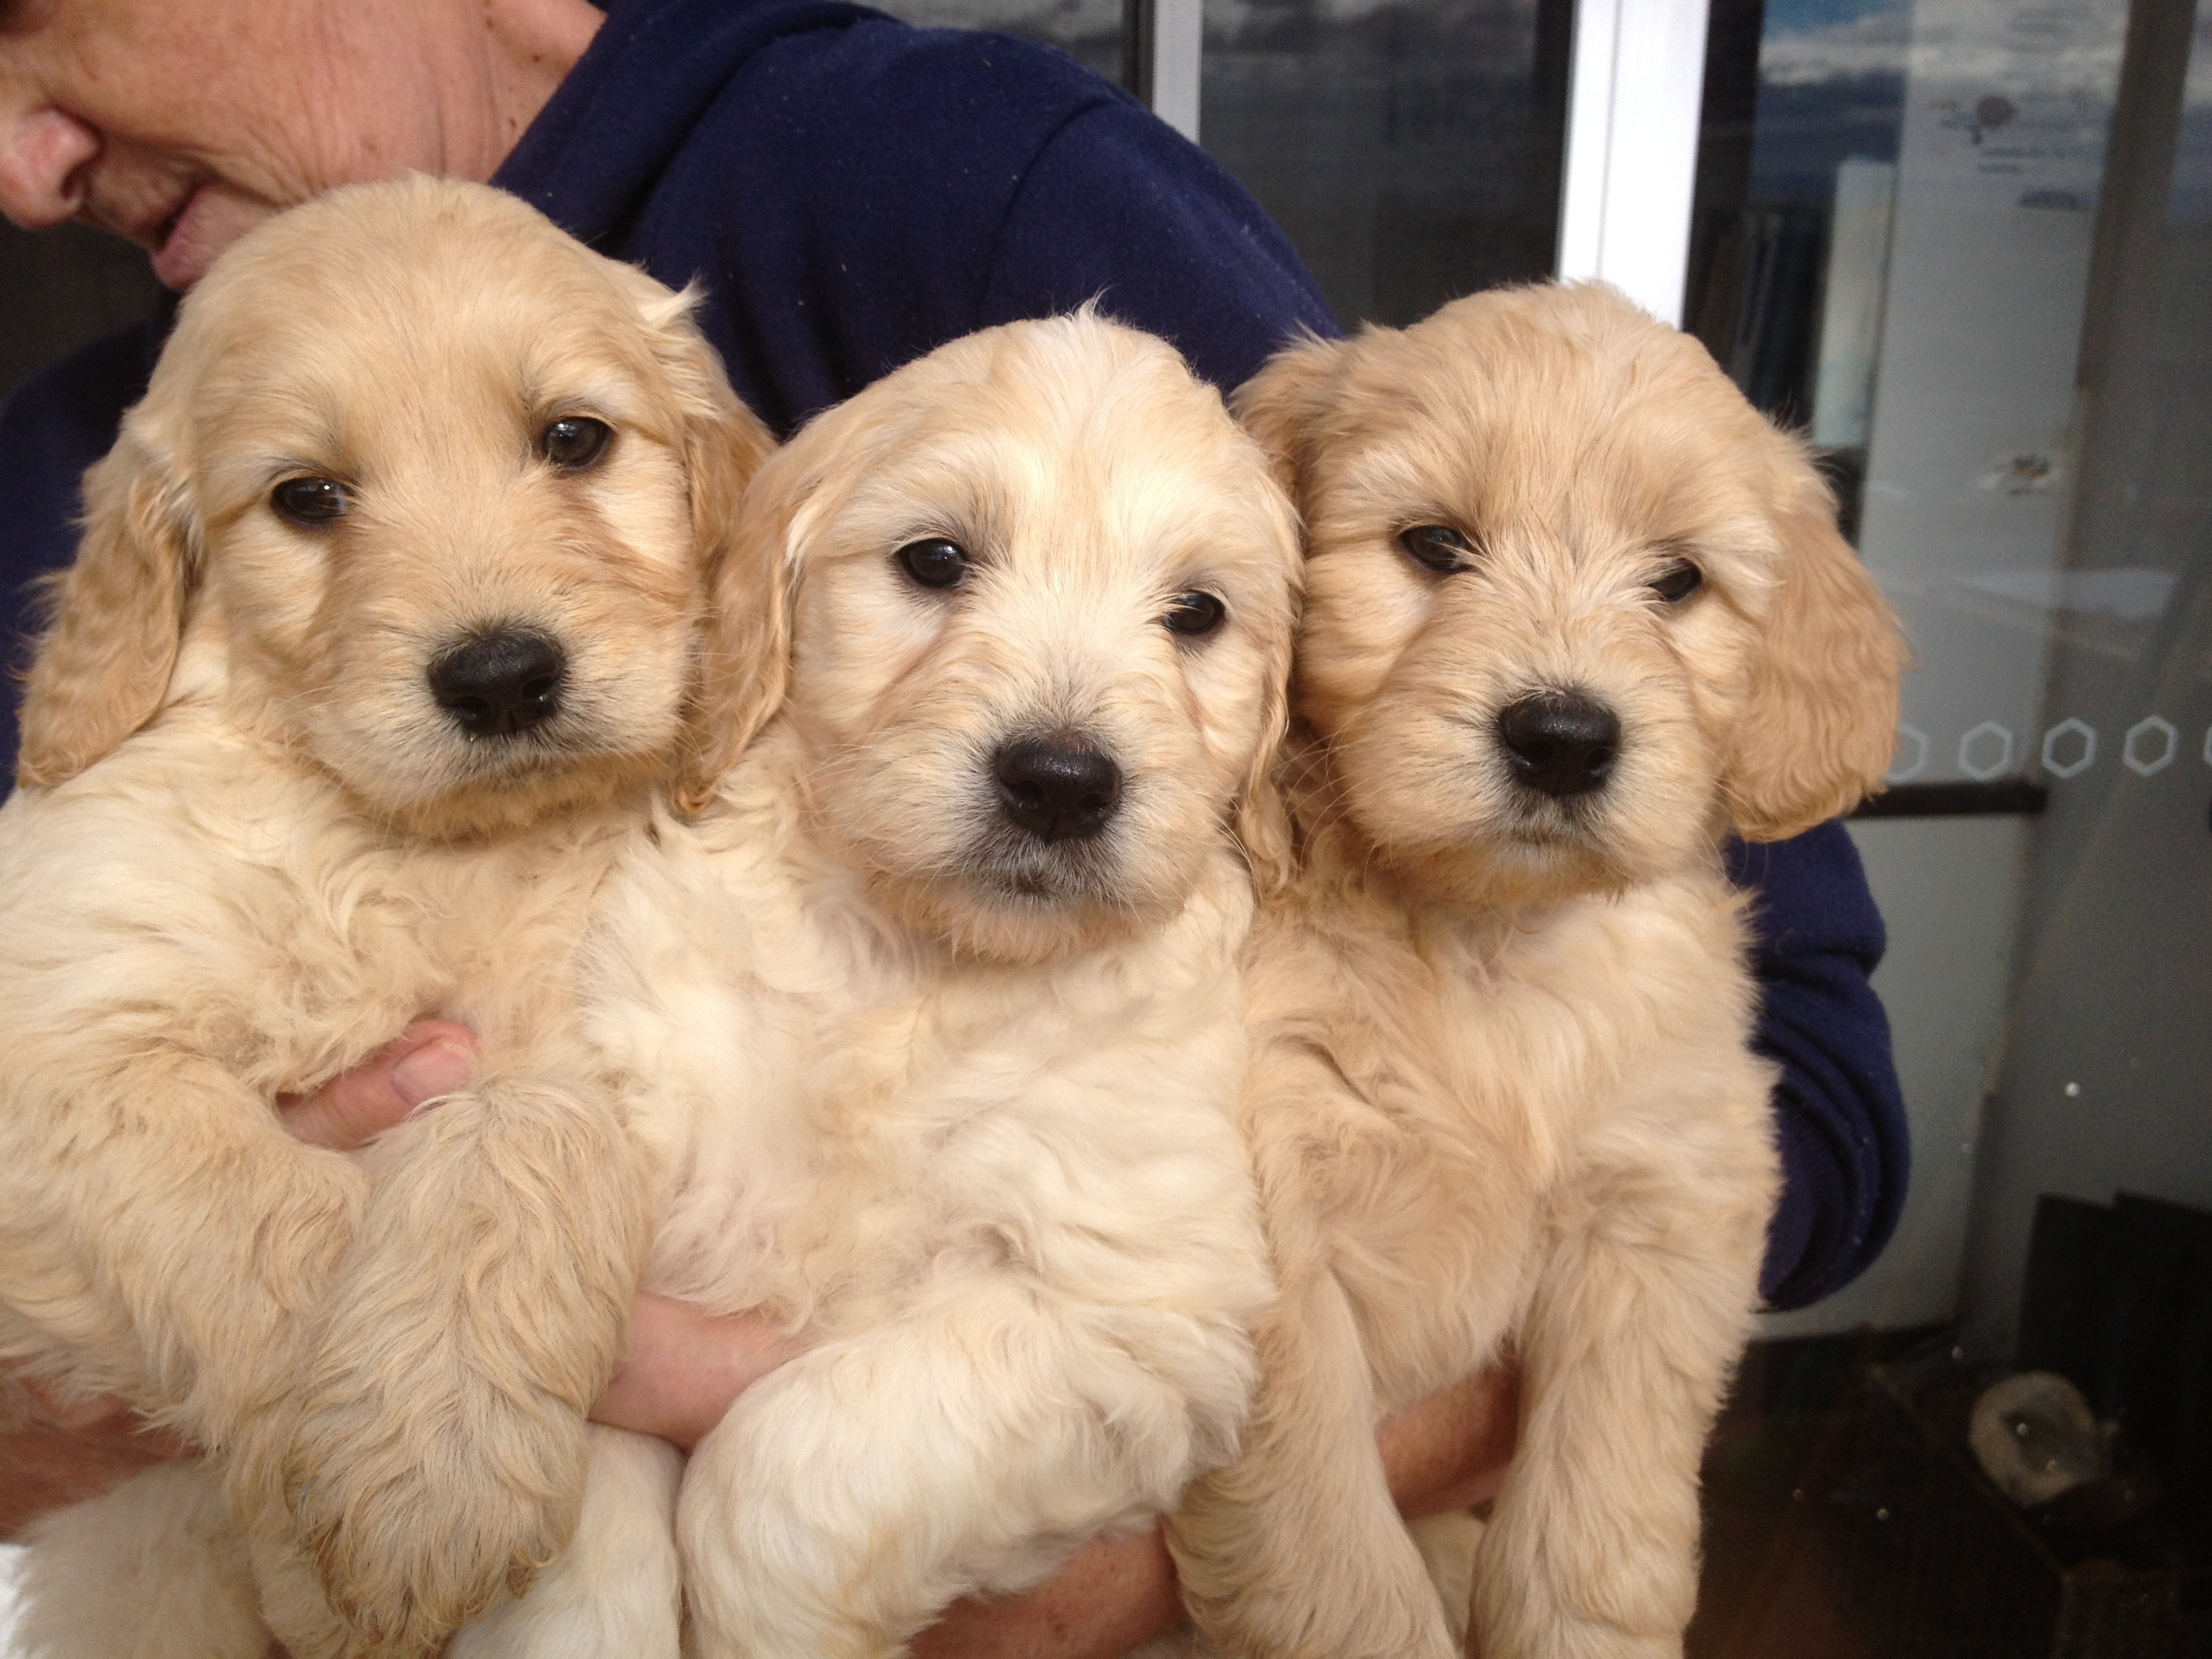 Puppies golden retriever x poodle for sale nsw bathurst